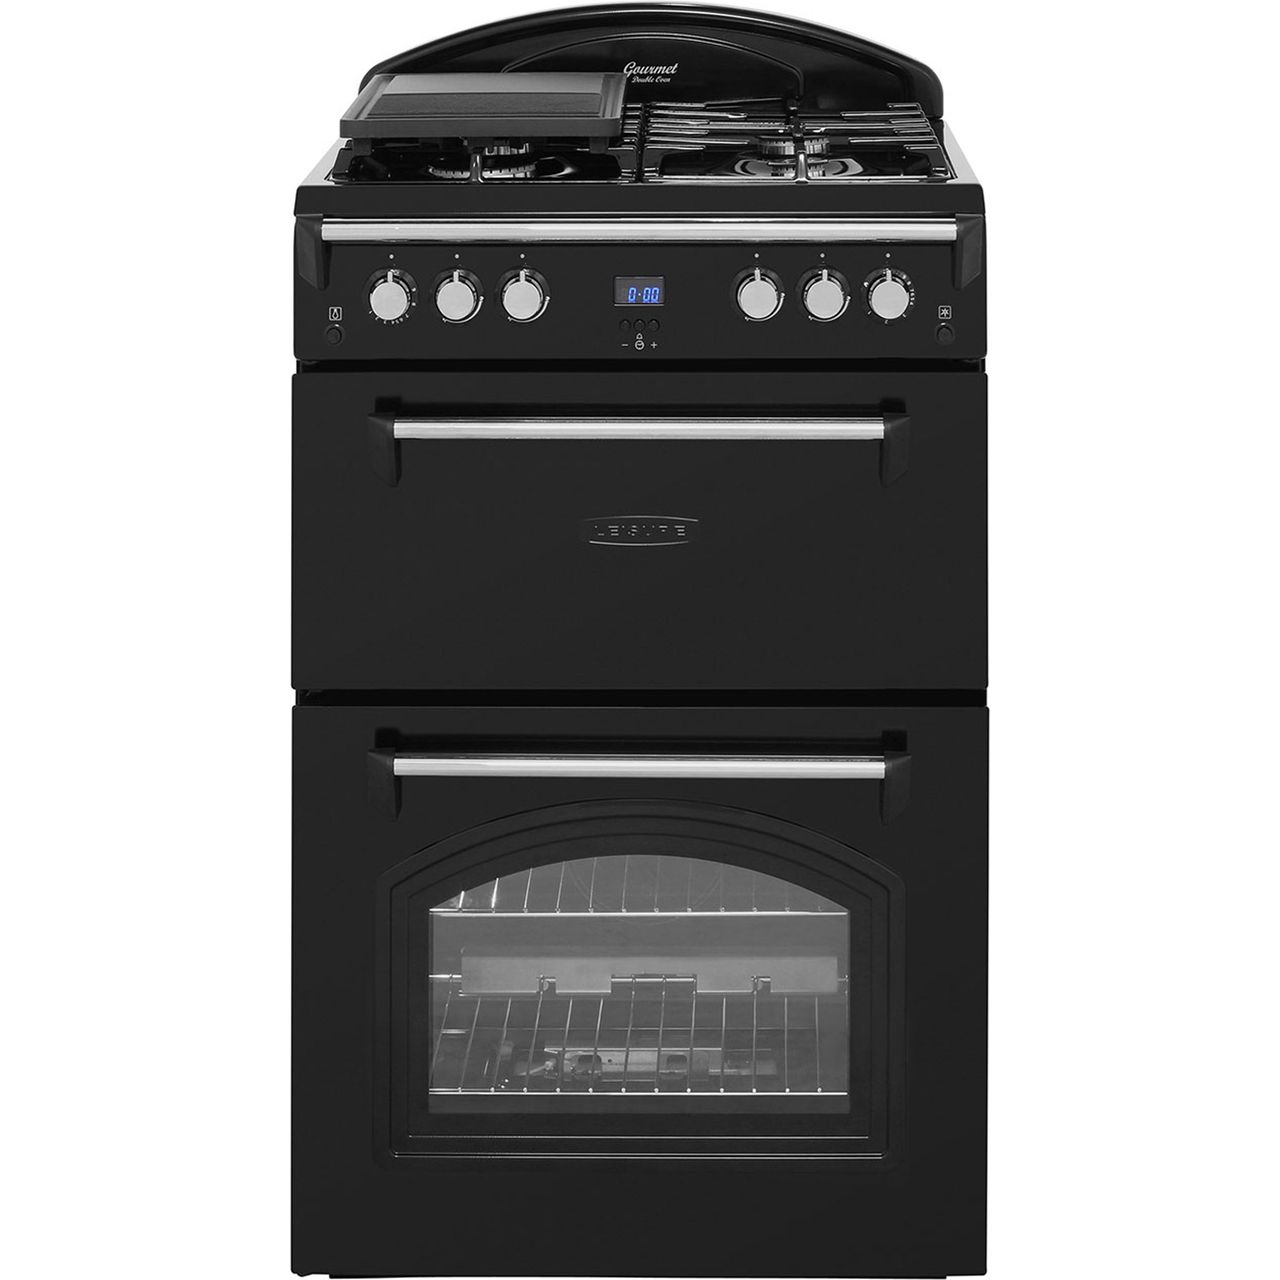 Leisure Gourmet GRB6GVK Free Standing Cooker in Black